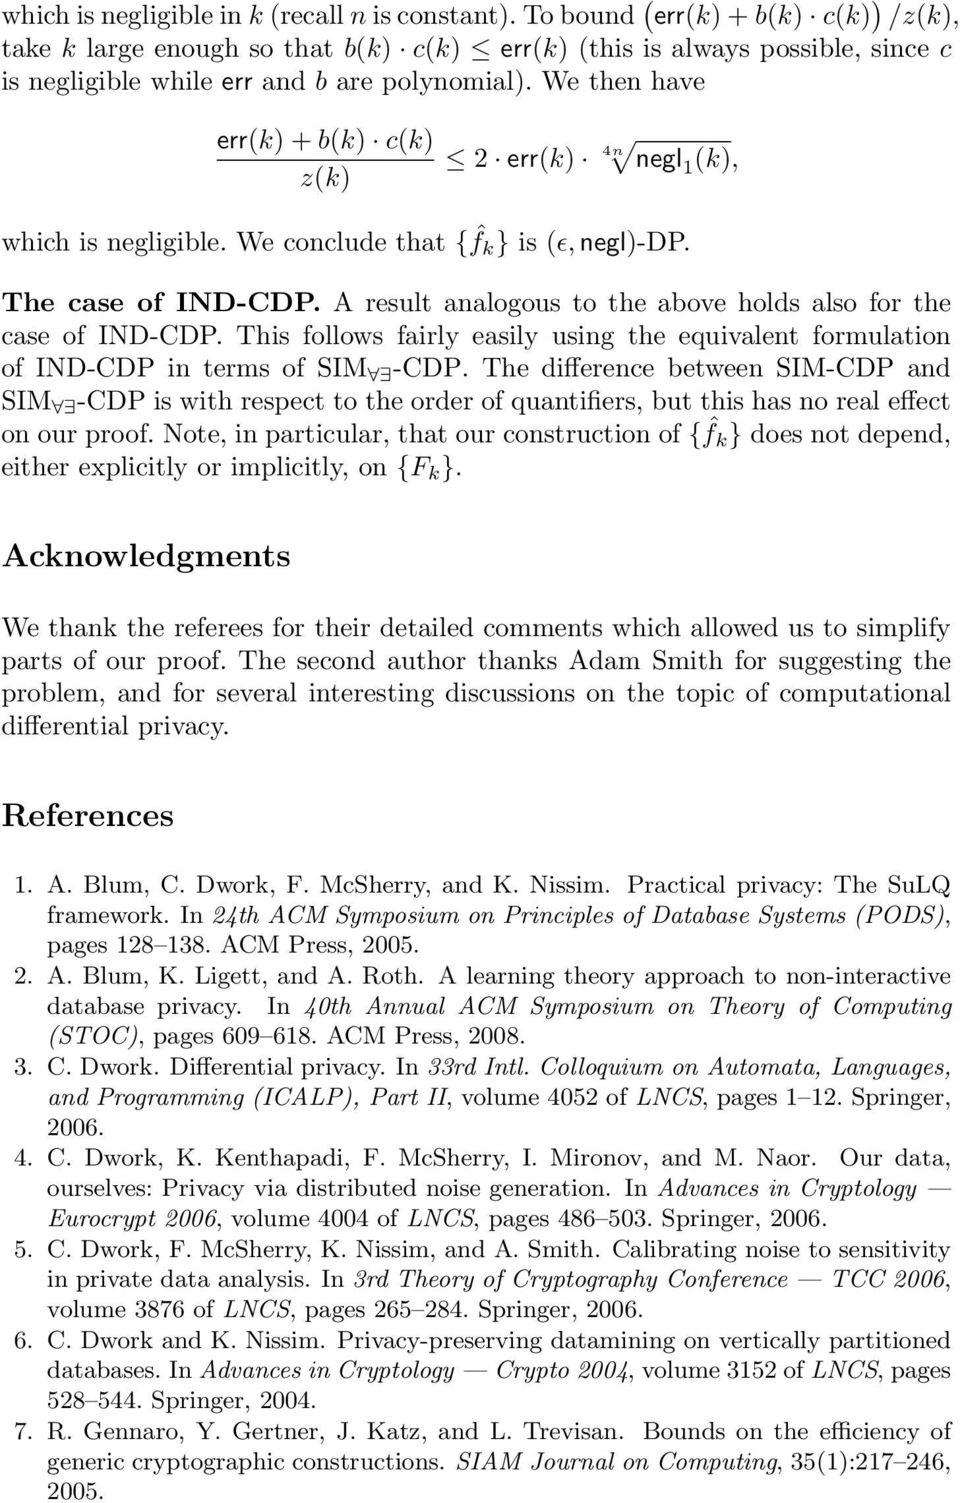 We then have err(k) + b(k) c(k) z(k) 2 err(k) 4n negl 1 (k), which is negligible. We conclude that { ˆf k } is (ɛ, negl)-dp. The case of IND-CDP.